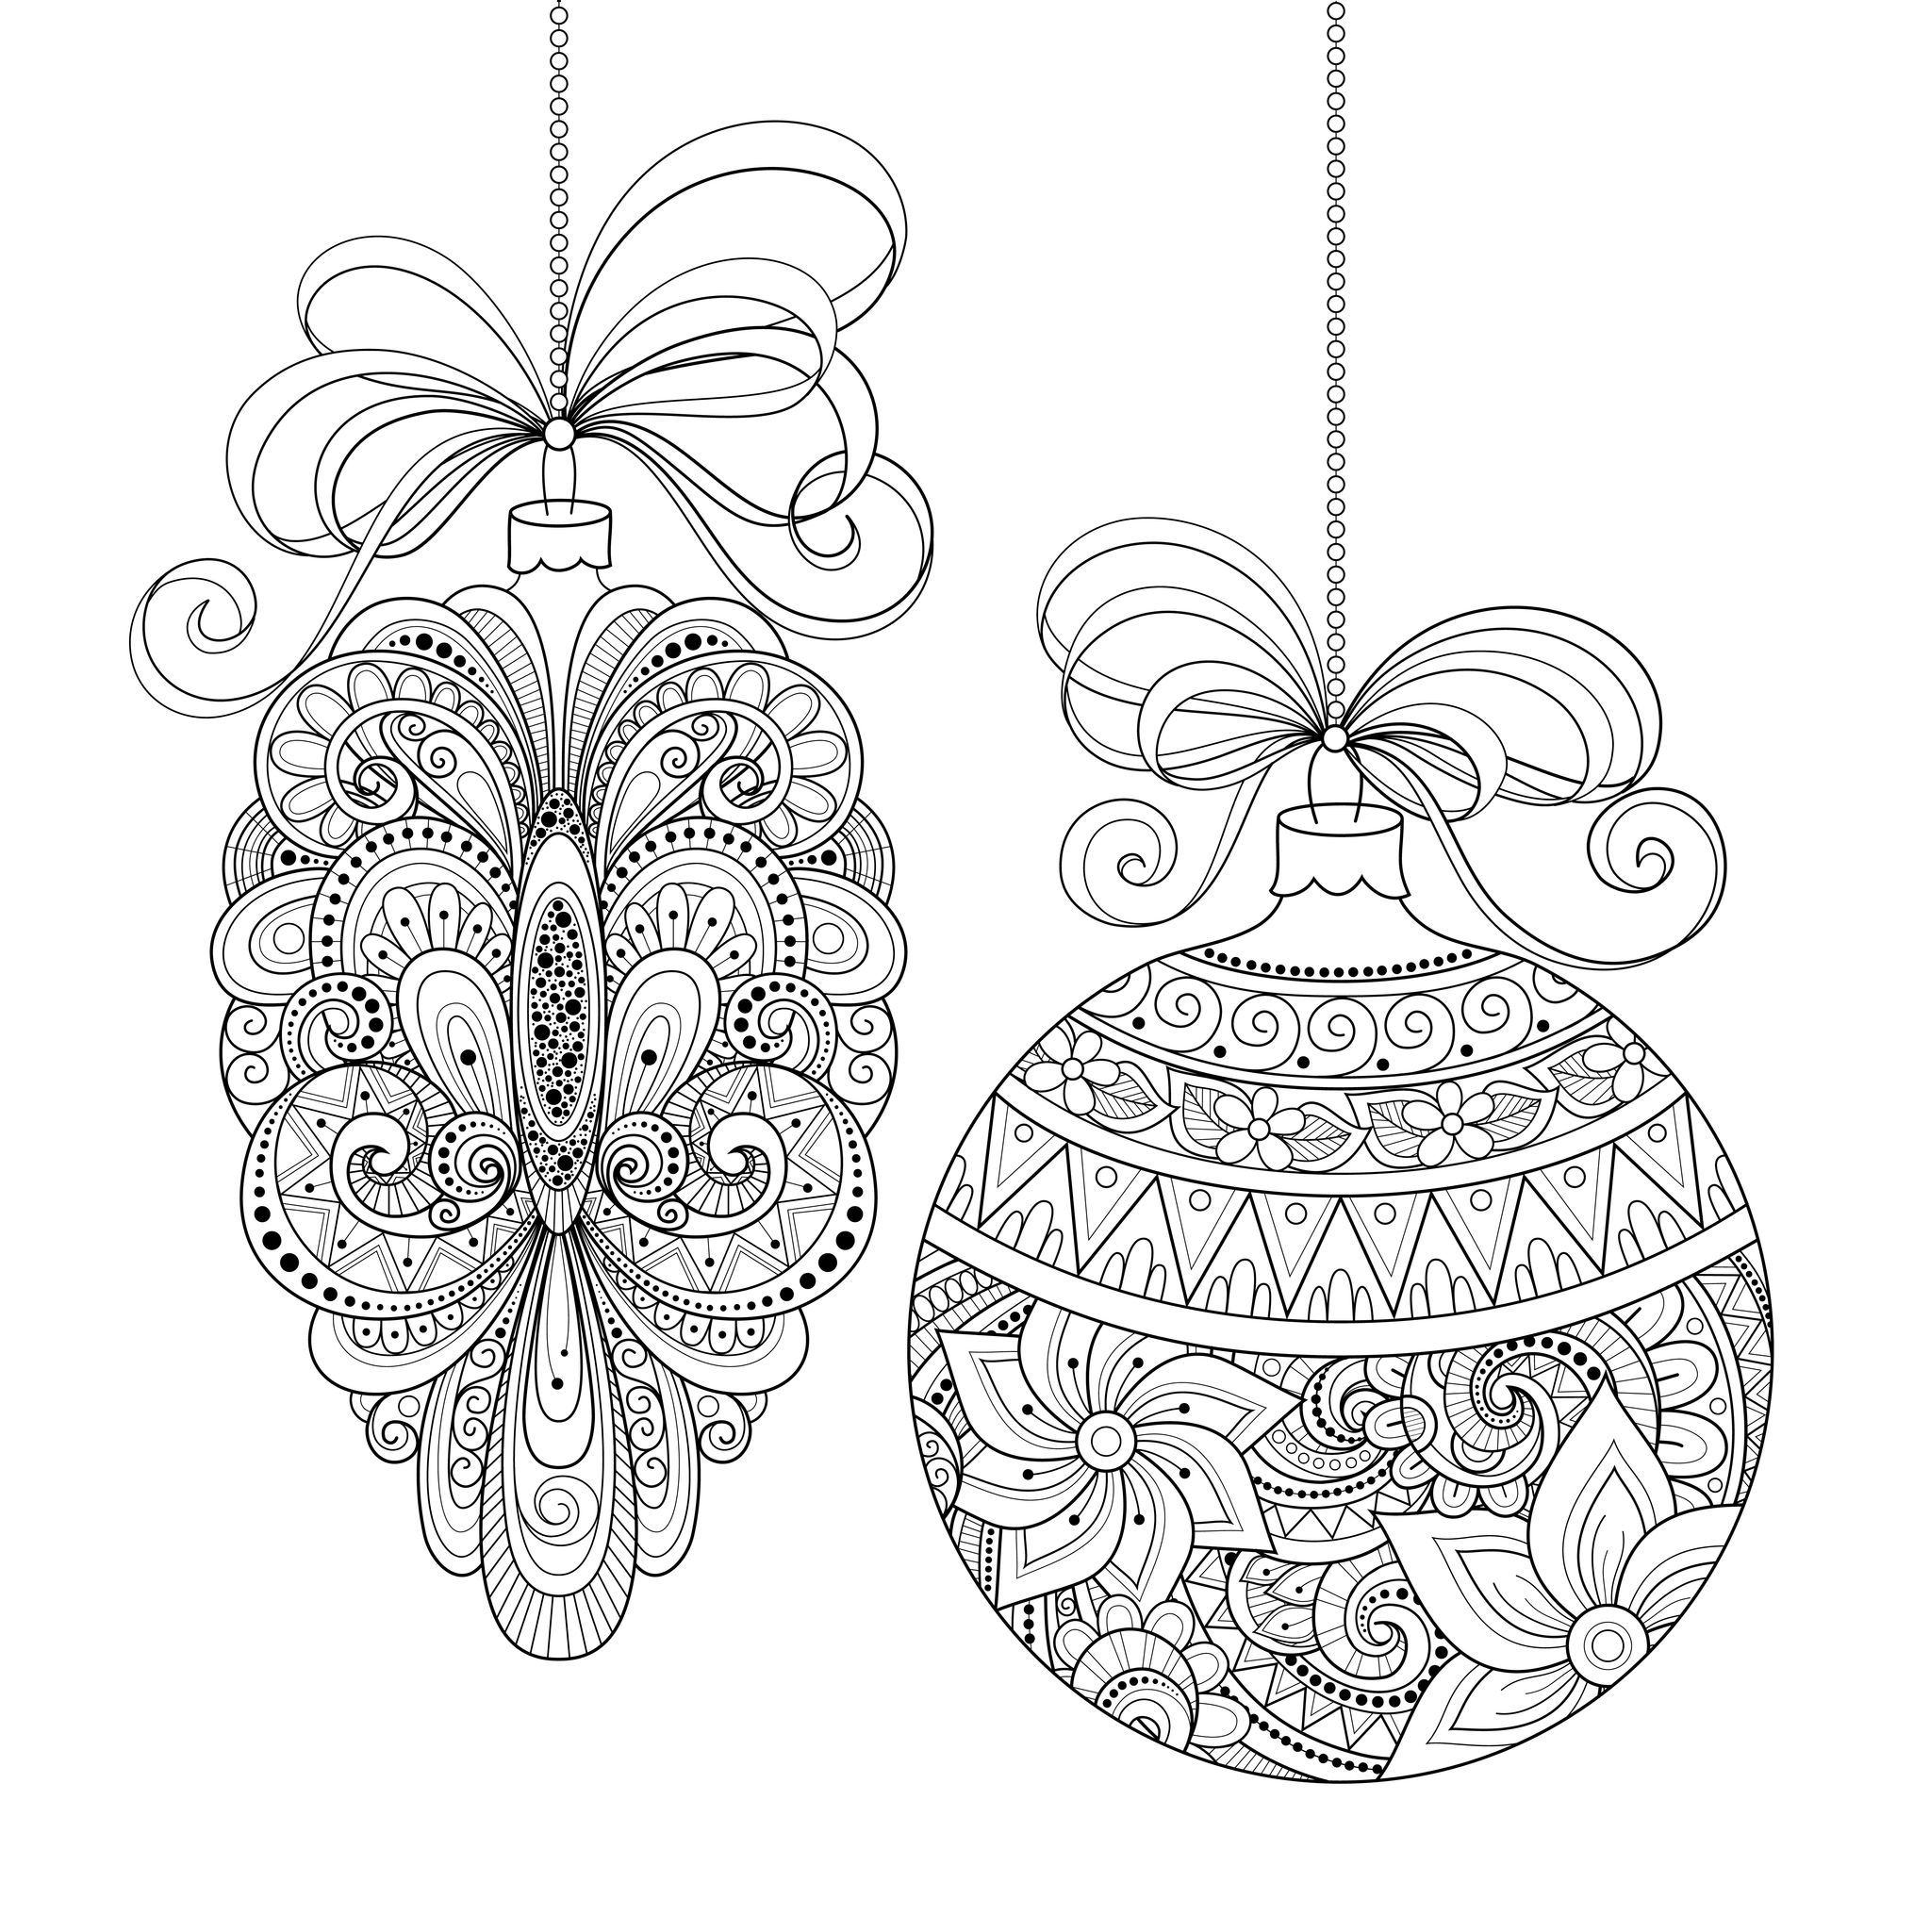 Christmas ornaments christmas adult coloring pages for Adult christmas coloring pages